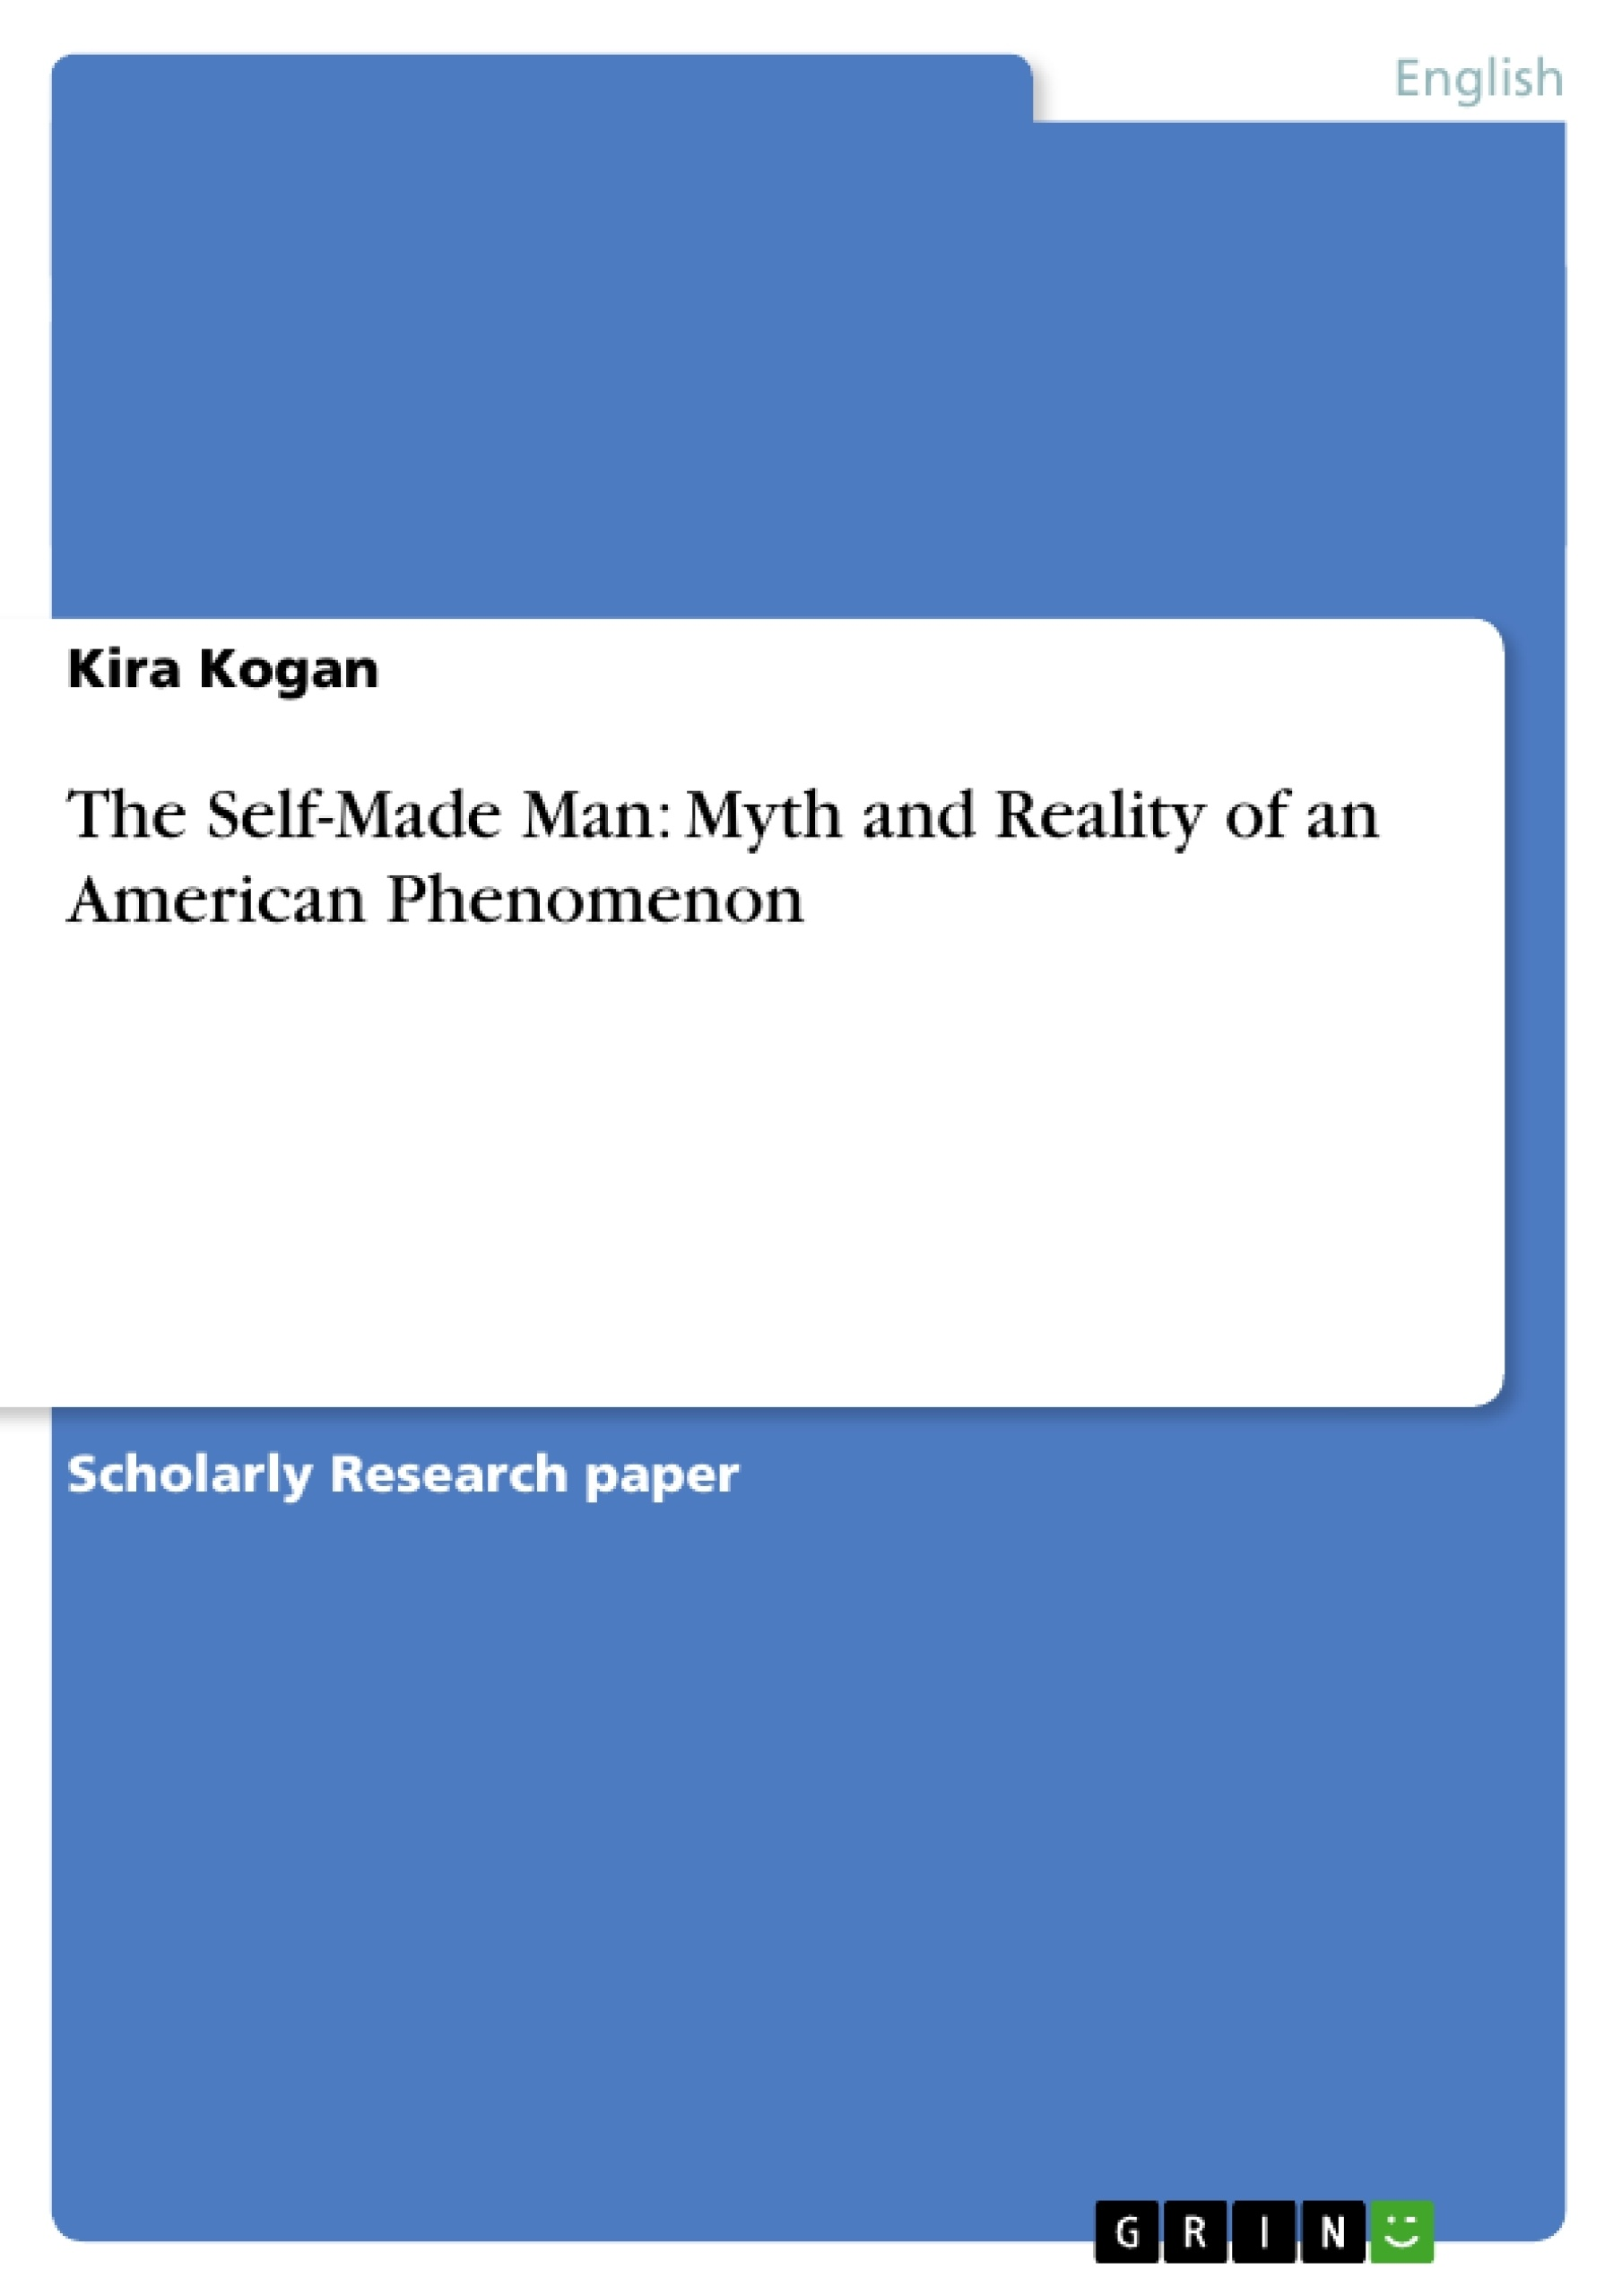 Title: The Self-Made Man: Myth and Reality of an American Phenomenon